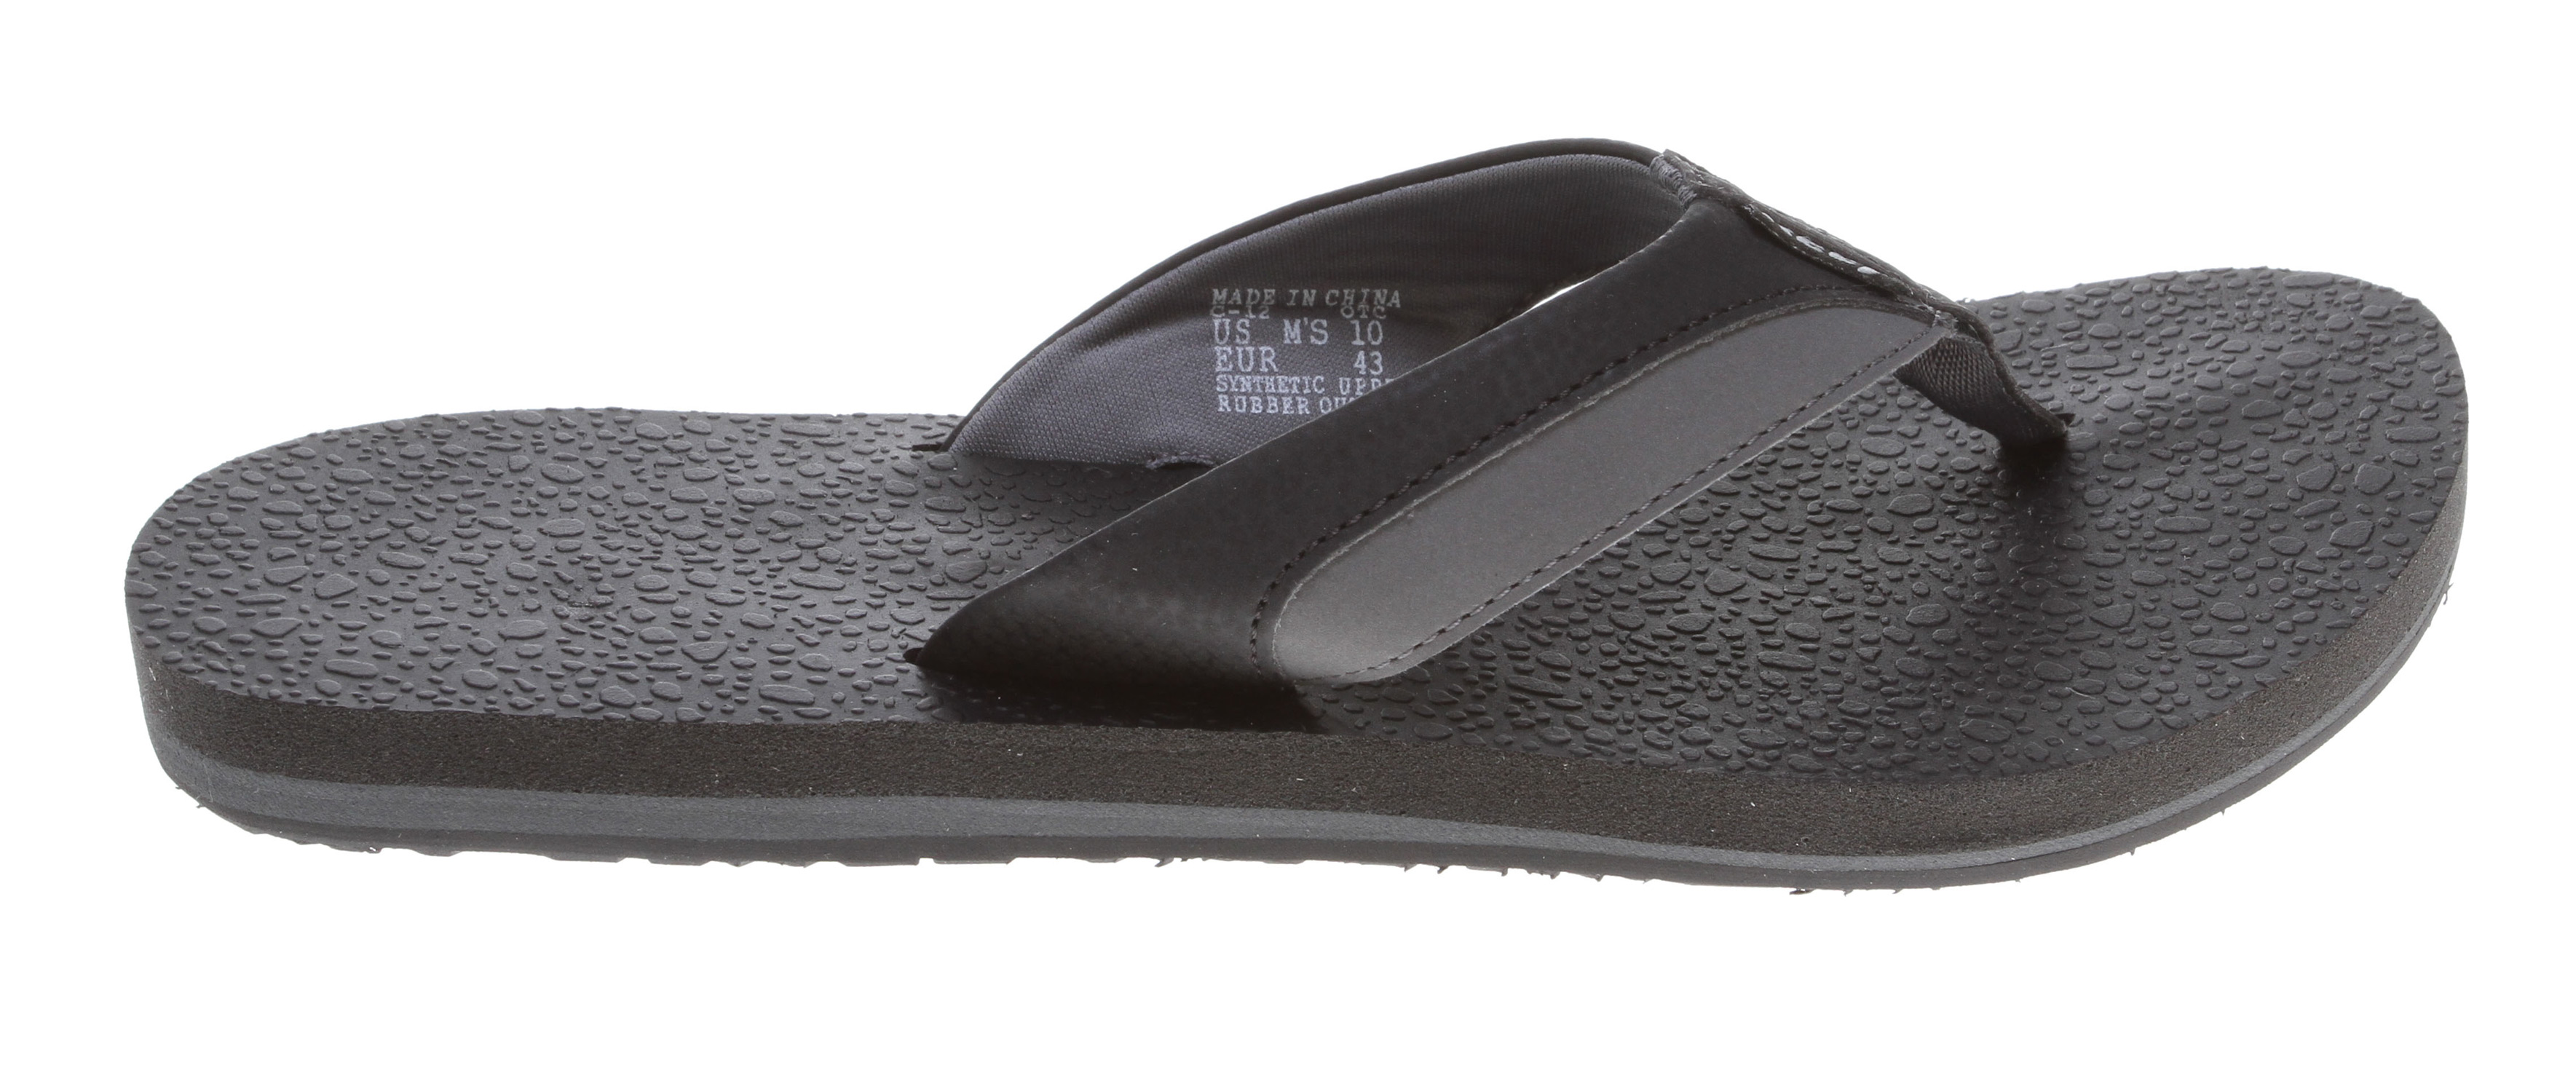 Surf Key Features of the Reef Cushion Sandals: High quality synthetic nubuck upper with contrast underlay design detail comfortable synthetic jersey lining Memory foam footbed with surf wax-like texture Durable and grippy molded reef icon rubber outsole - $24.95